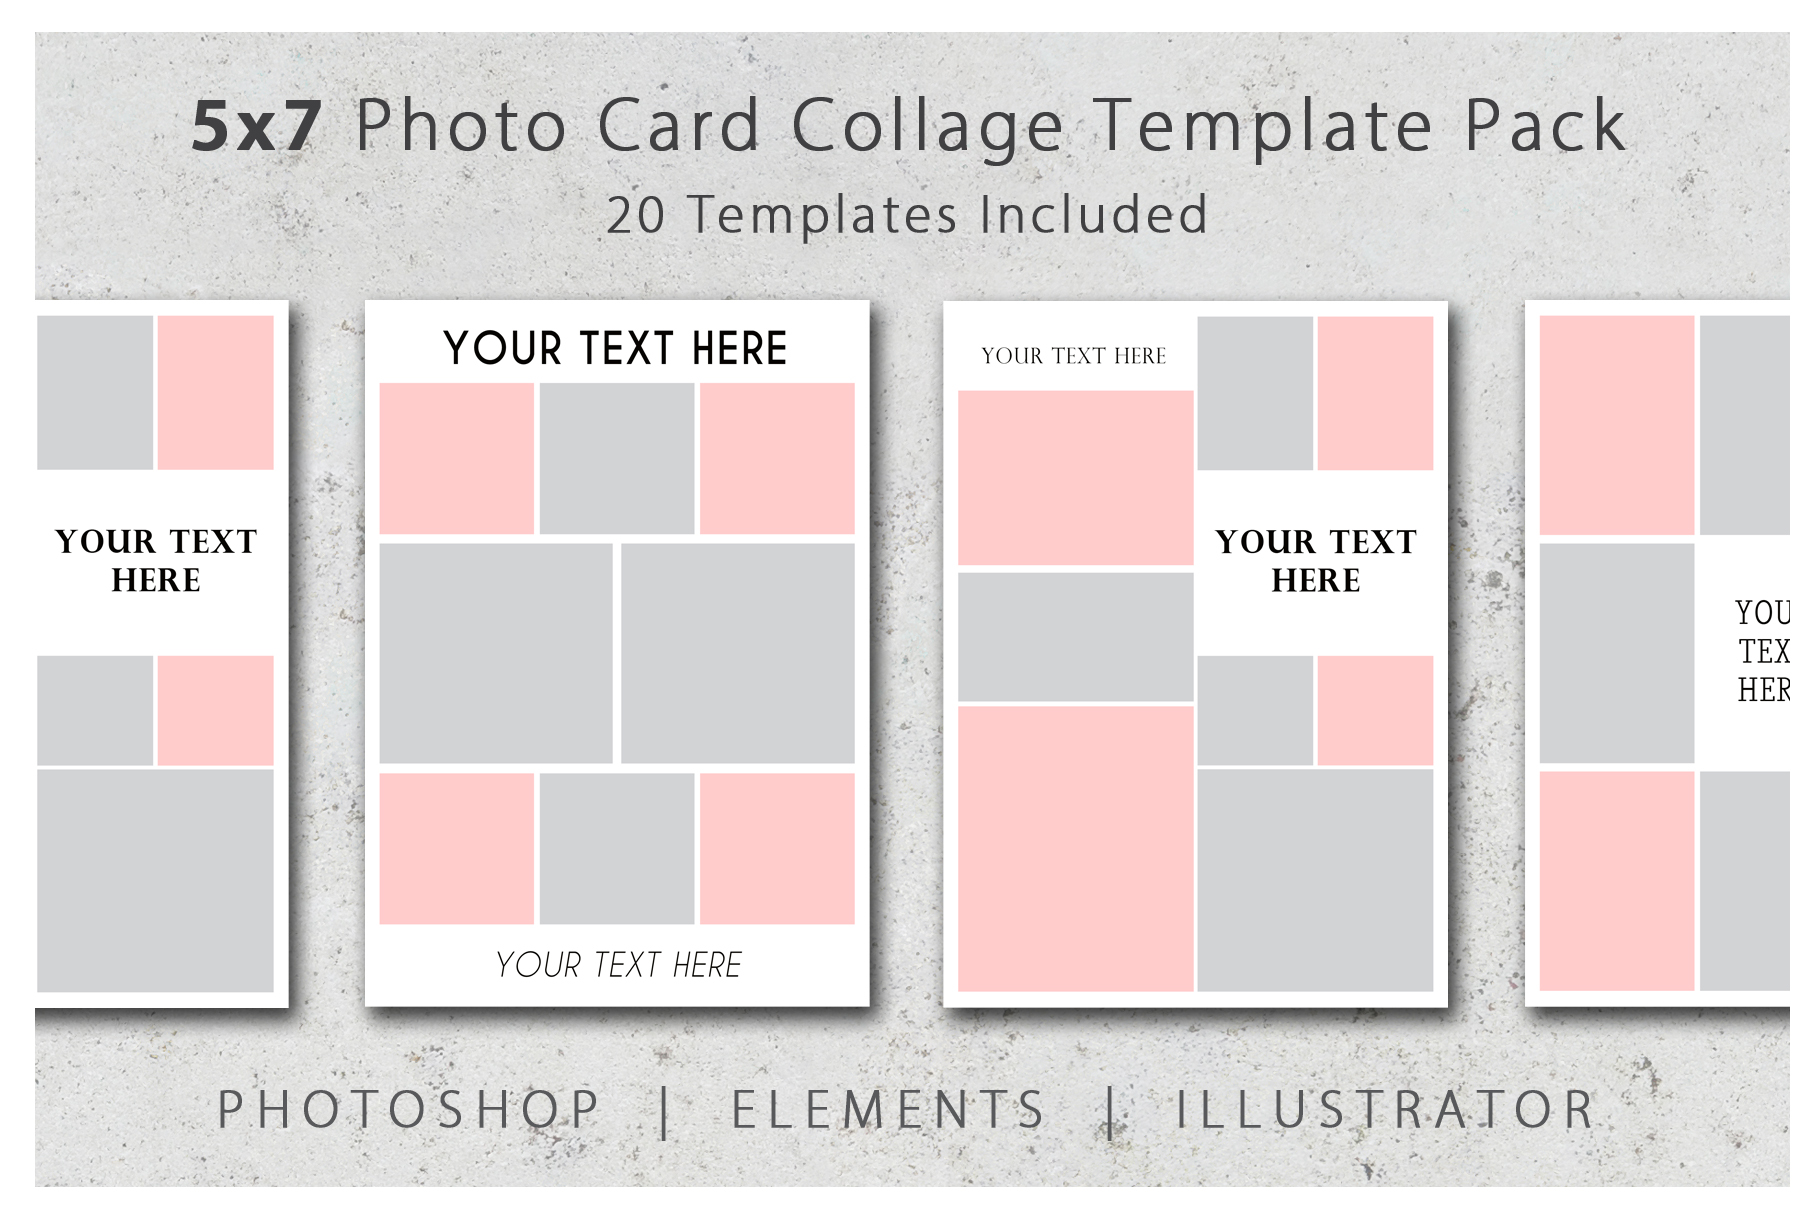 5x7 Photo Card and Invitation Collage Template Pack example image 1